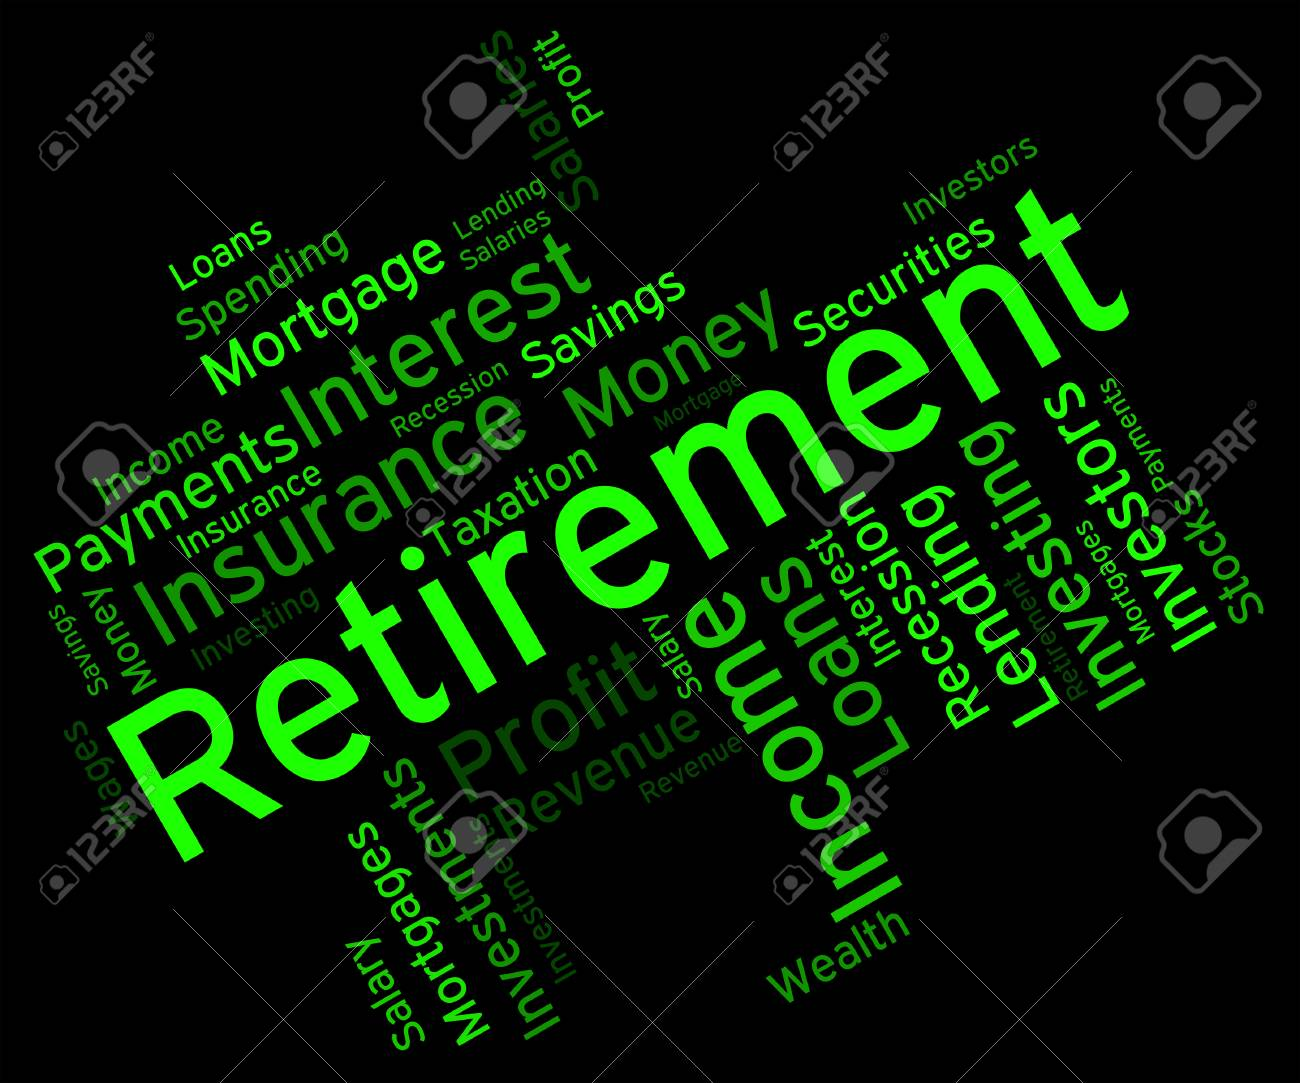 retirement word representing finish working and words stock photo